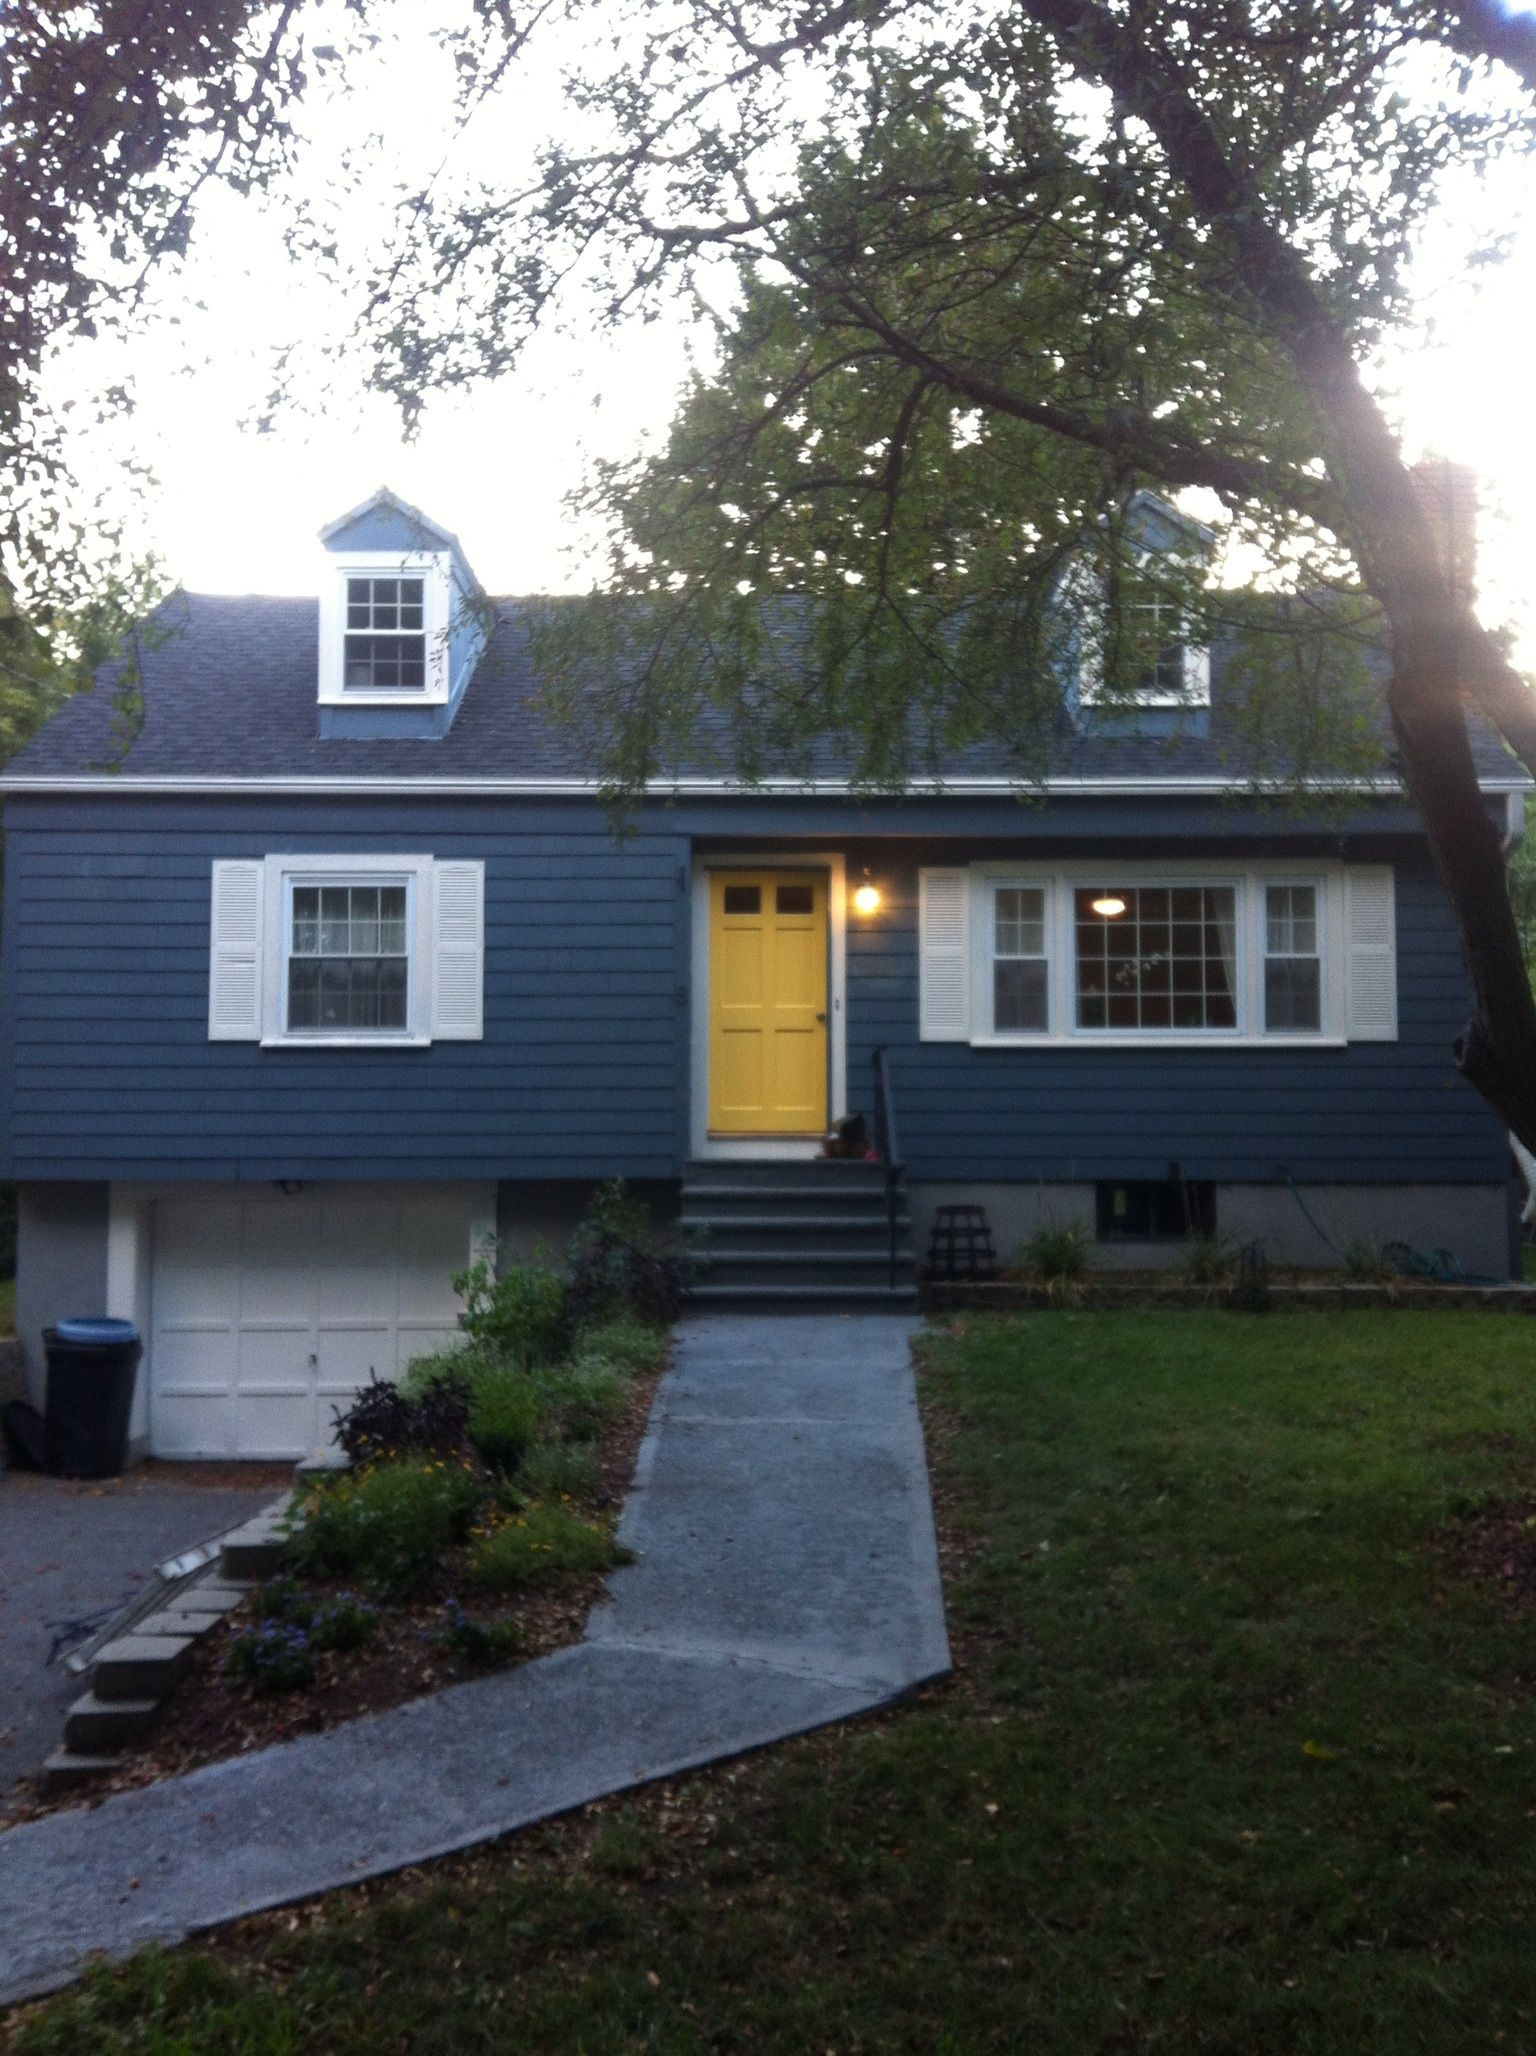 Yellow door and blue house google search home pinterest light blue houses yellow - Front door colors for blue house ...